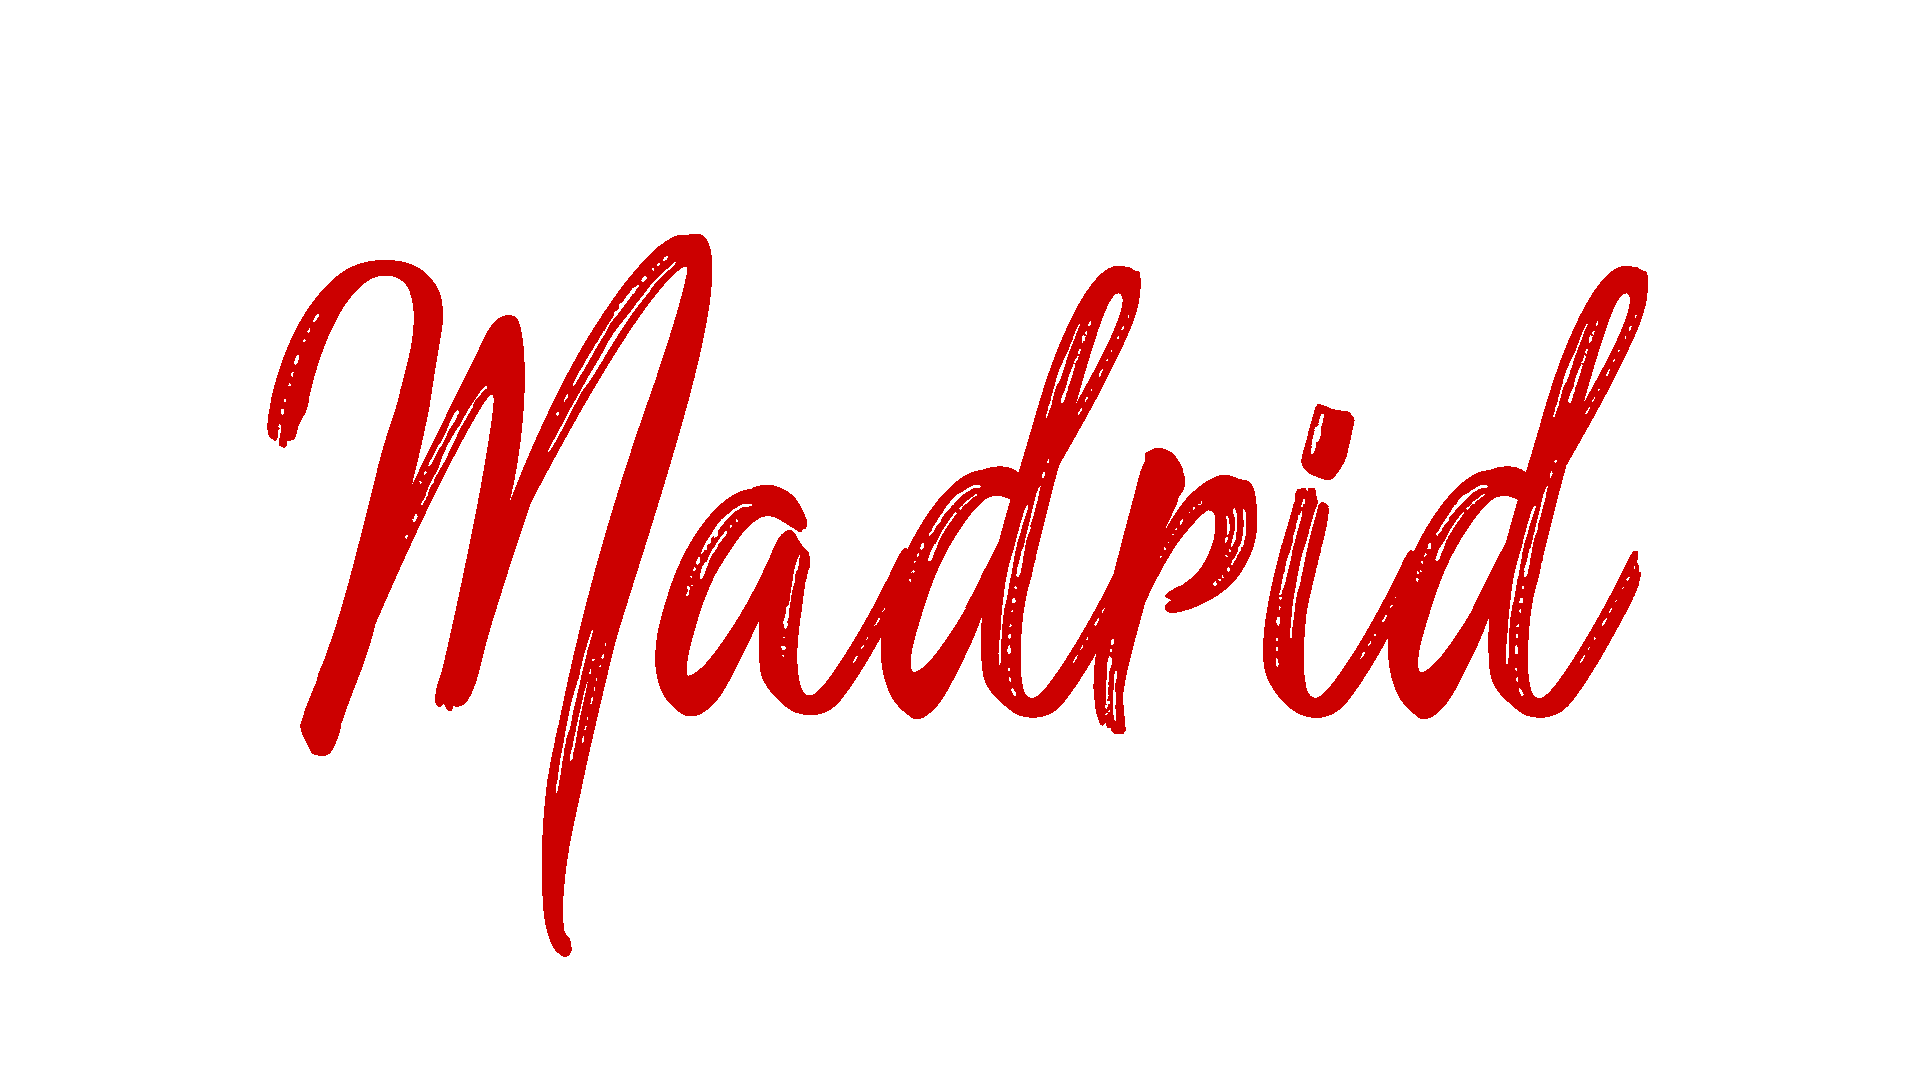 https://www.angelrielo.com/wp-content/uploads/2021/10/Madrid.png